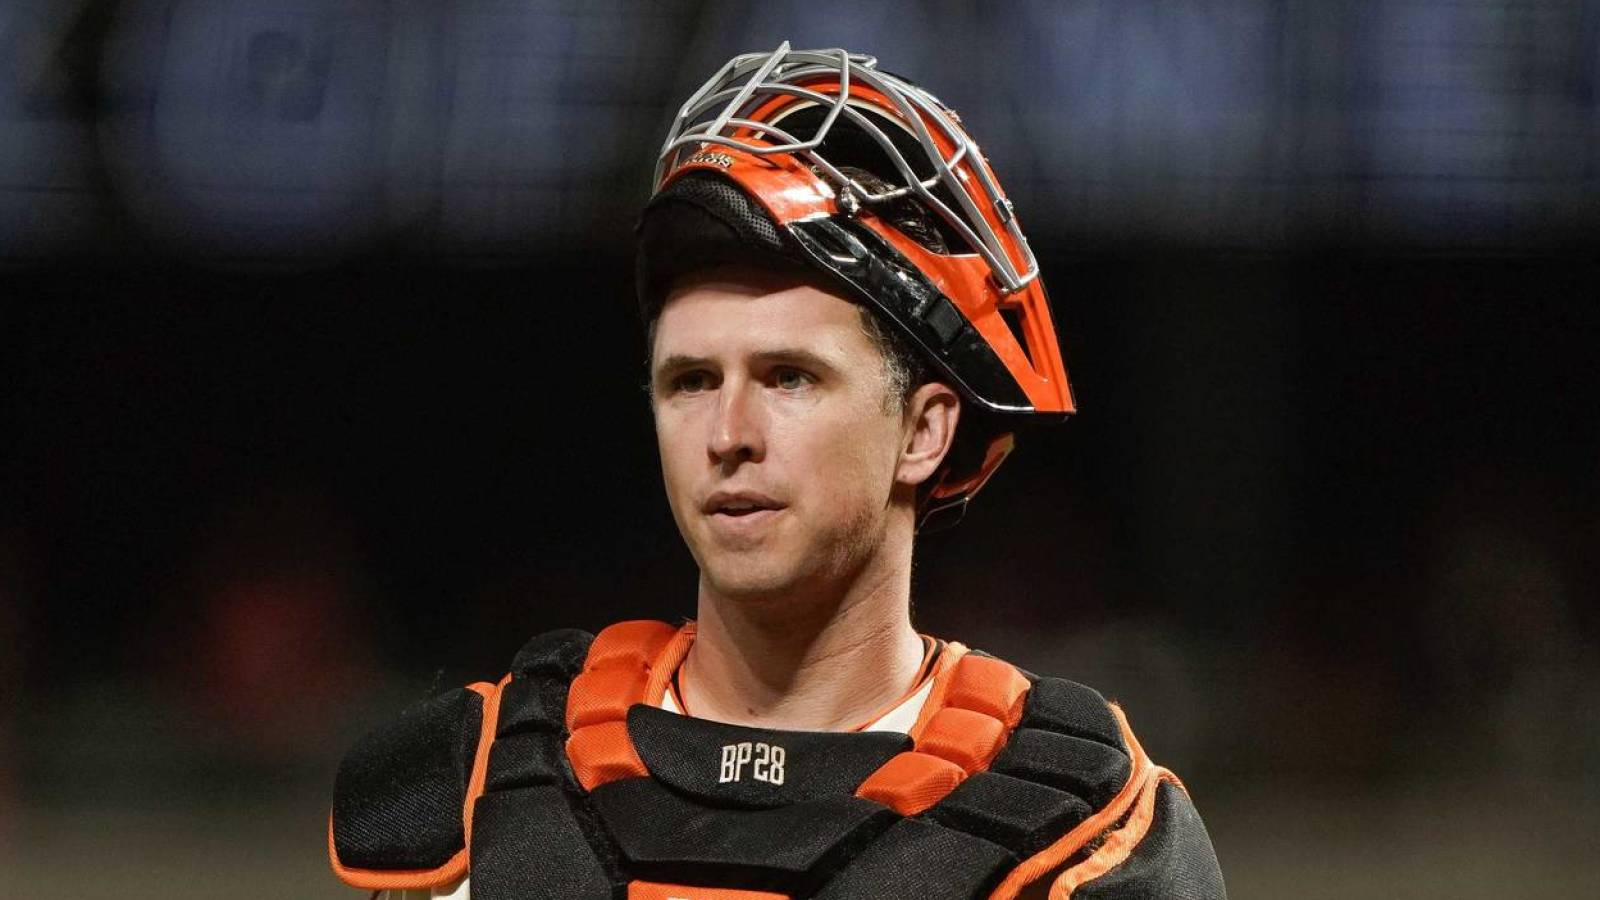 Buster Posey will not commit to playing in 2020